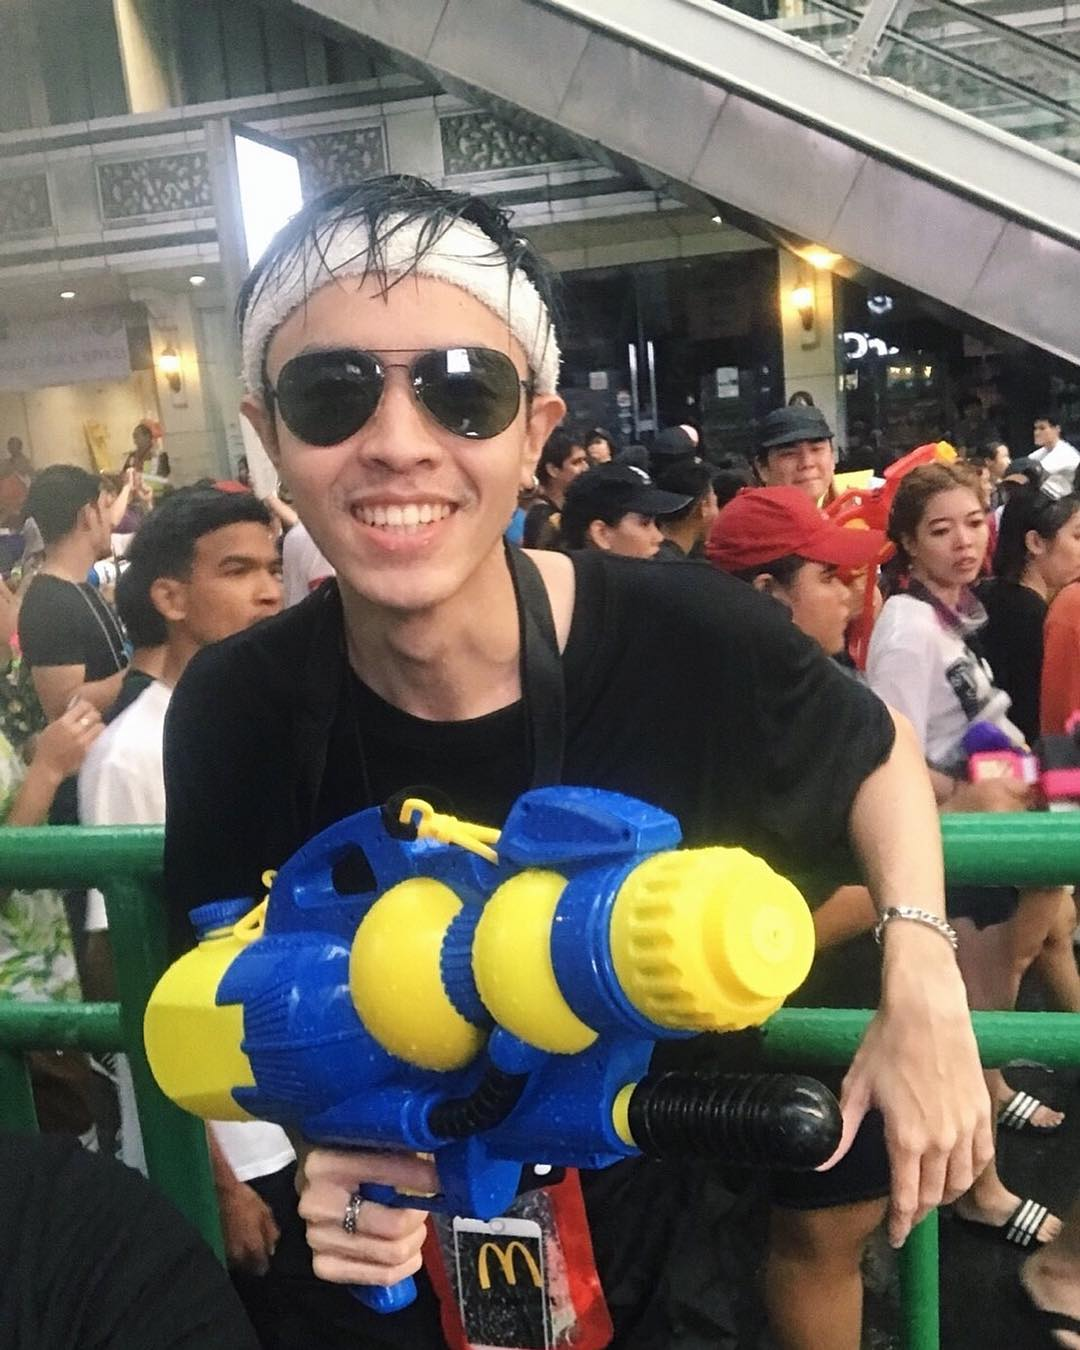 Boy with water gun during Songkran in Thailand